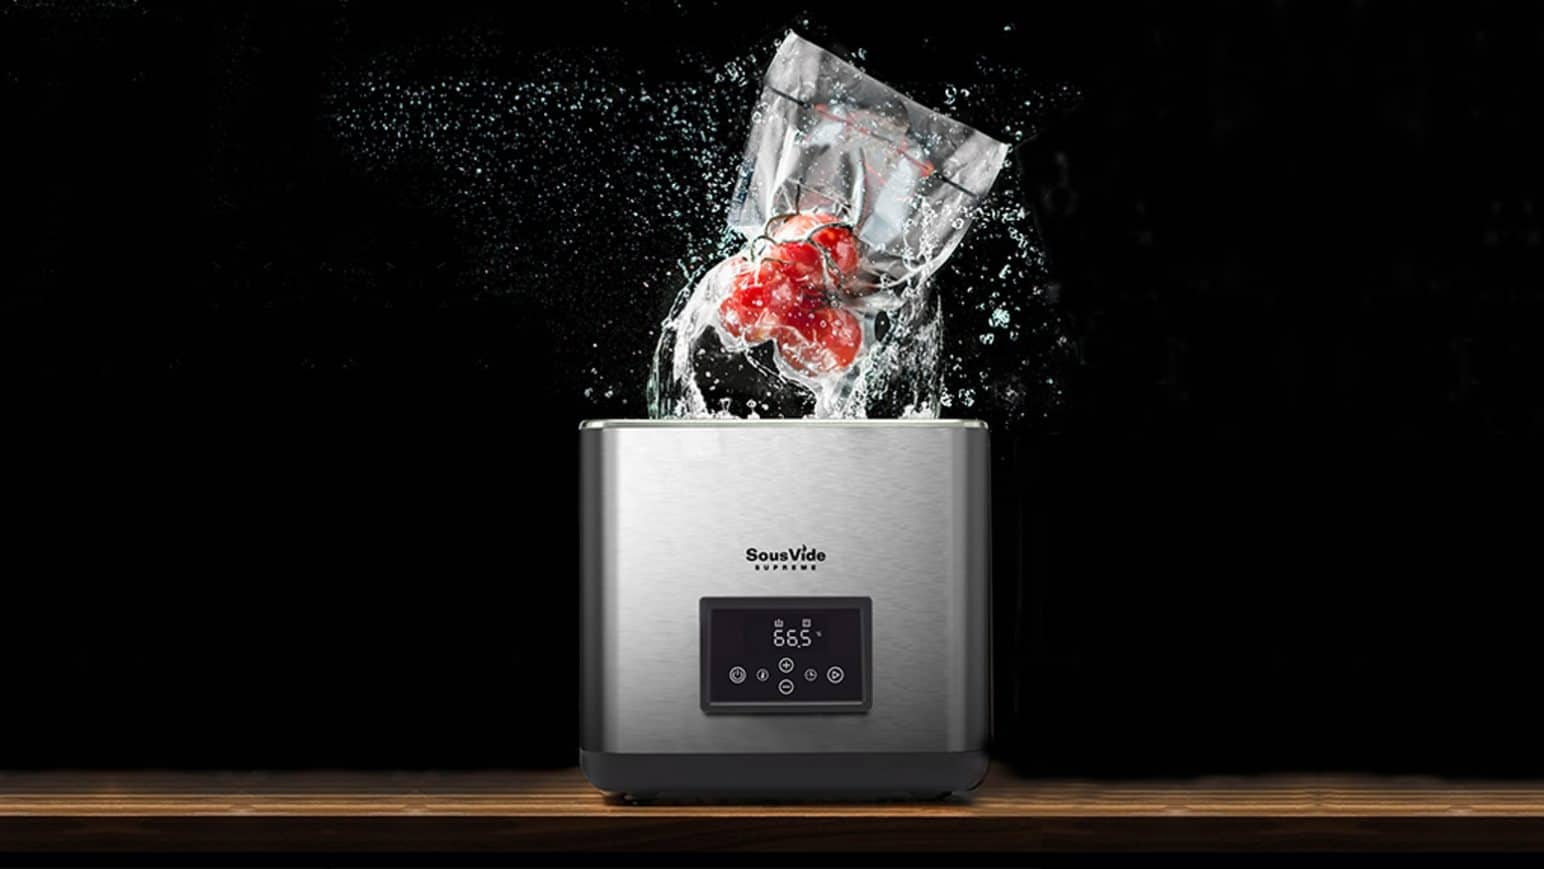 SousVide Supreme Touch Plus Product Image